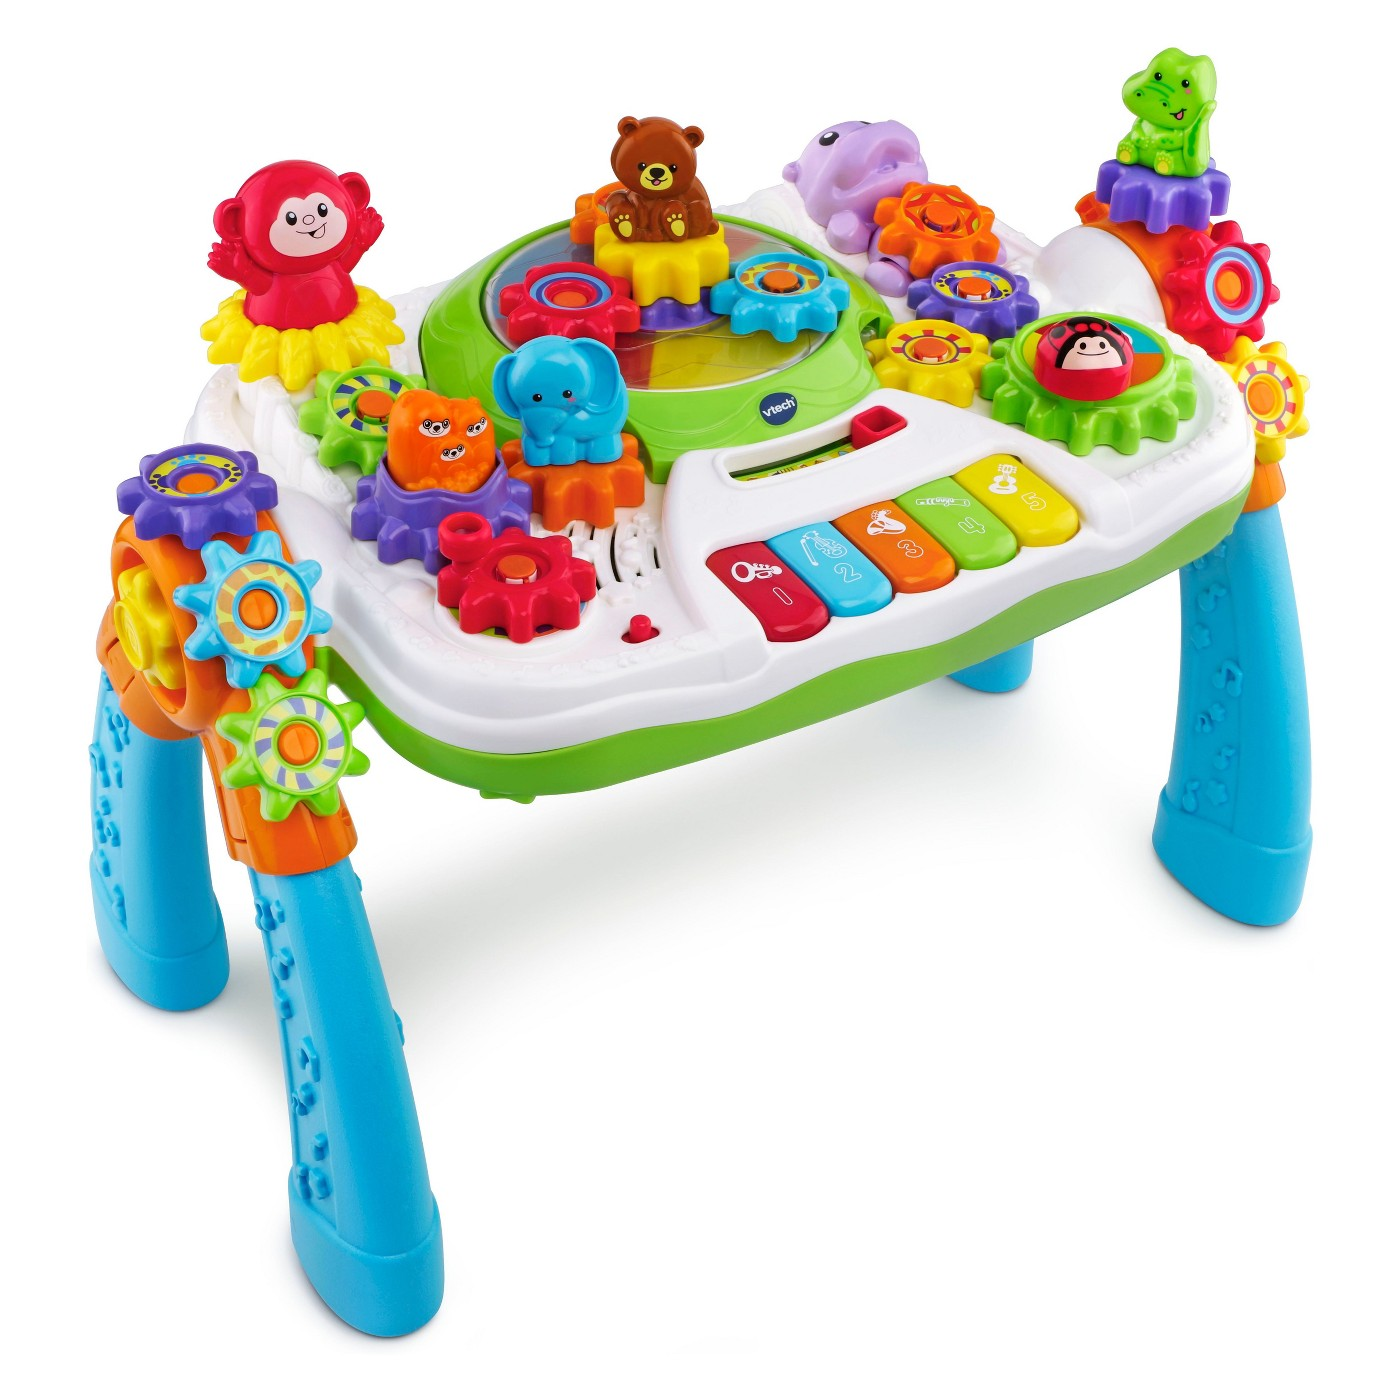 VTech GearZooz 2-in-1 Jungle Friends Gear Park - image 1 of 9